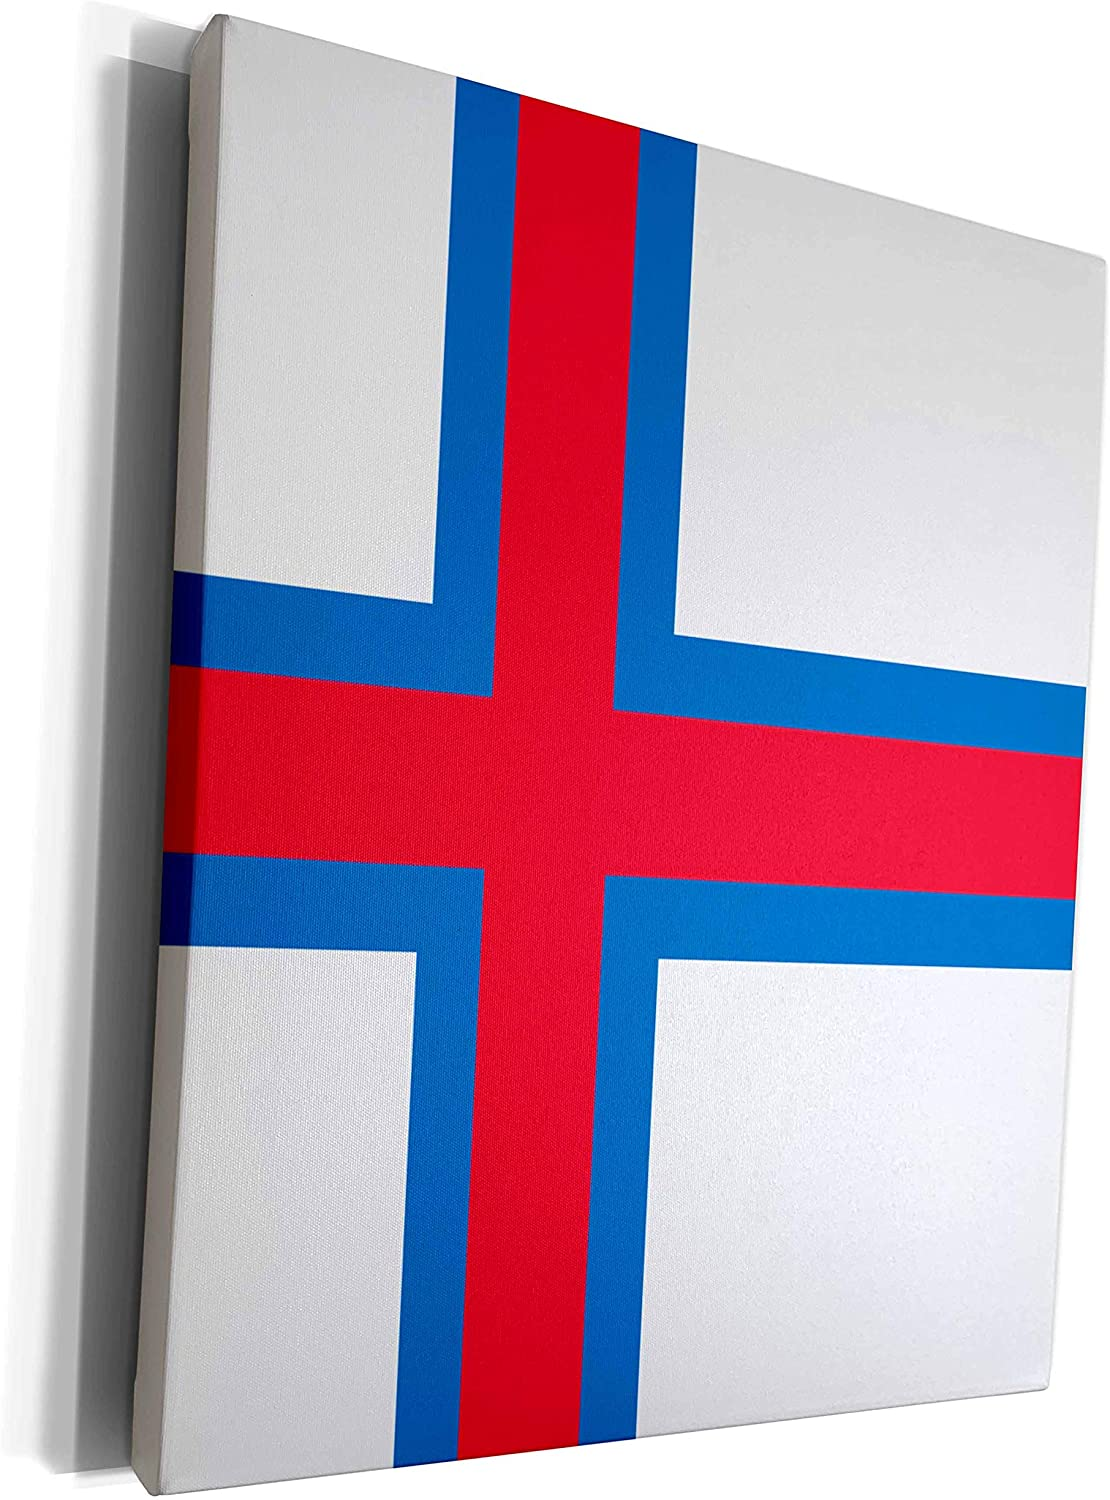 3dRose InspirationzStore Flags - Flag of the Faroe Islands - Faroese - Danish white red blue offset Scandinavian Nordic cross country - Museum Grade Canvas Wrap (cw_159802_1)